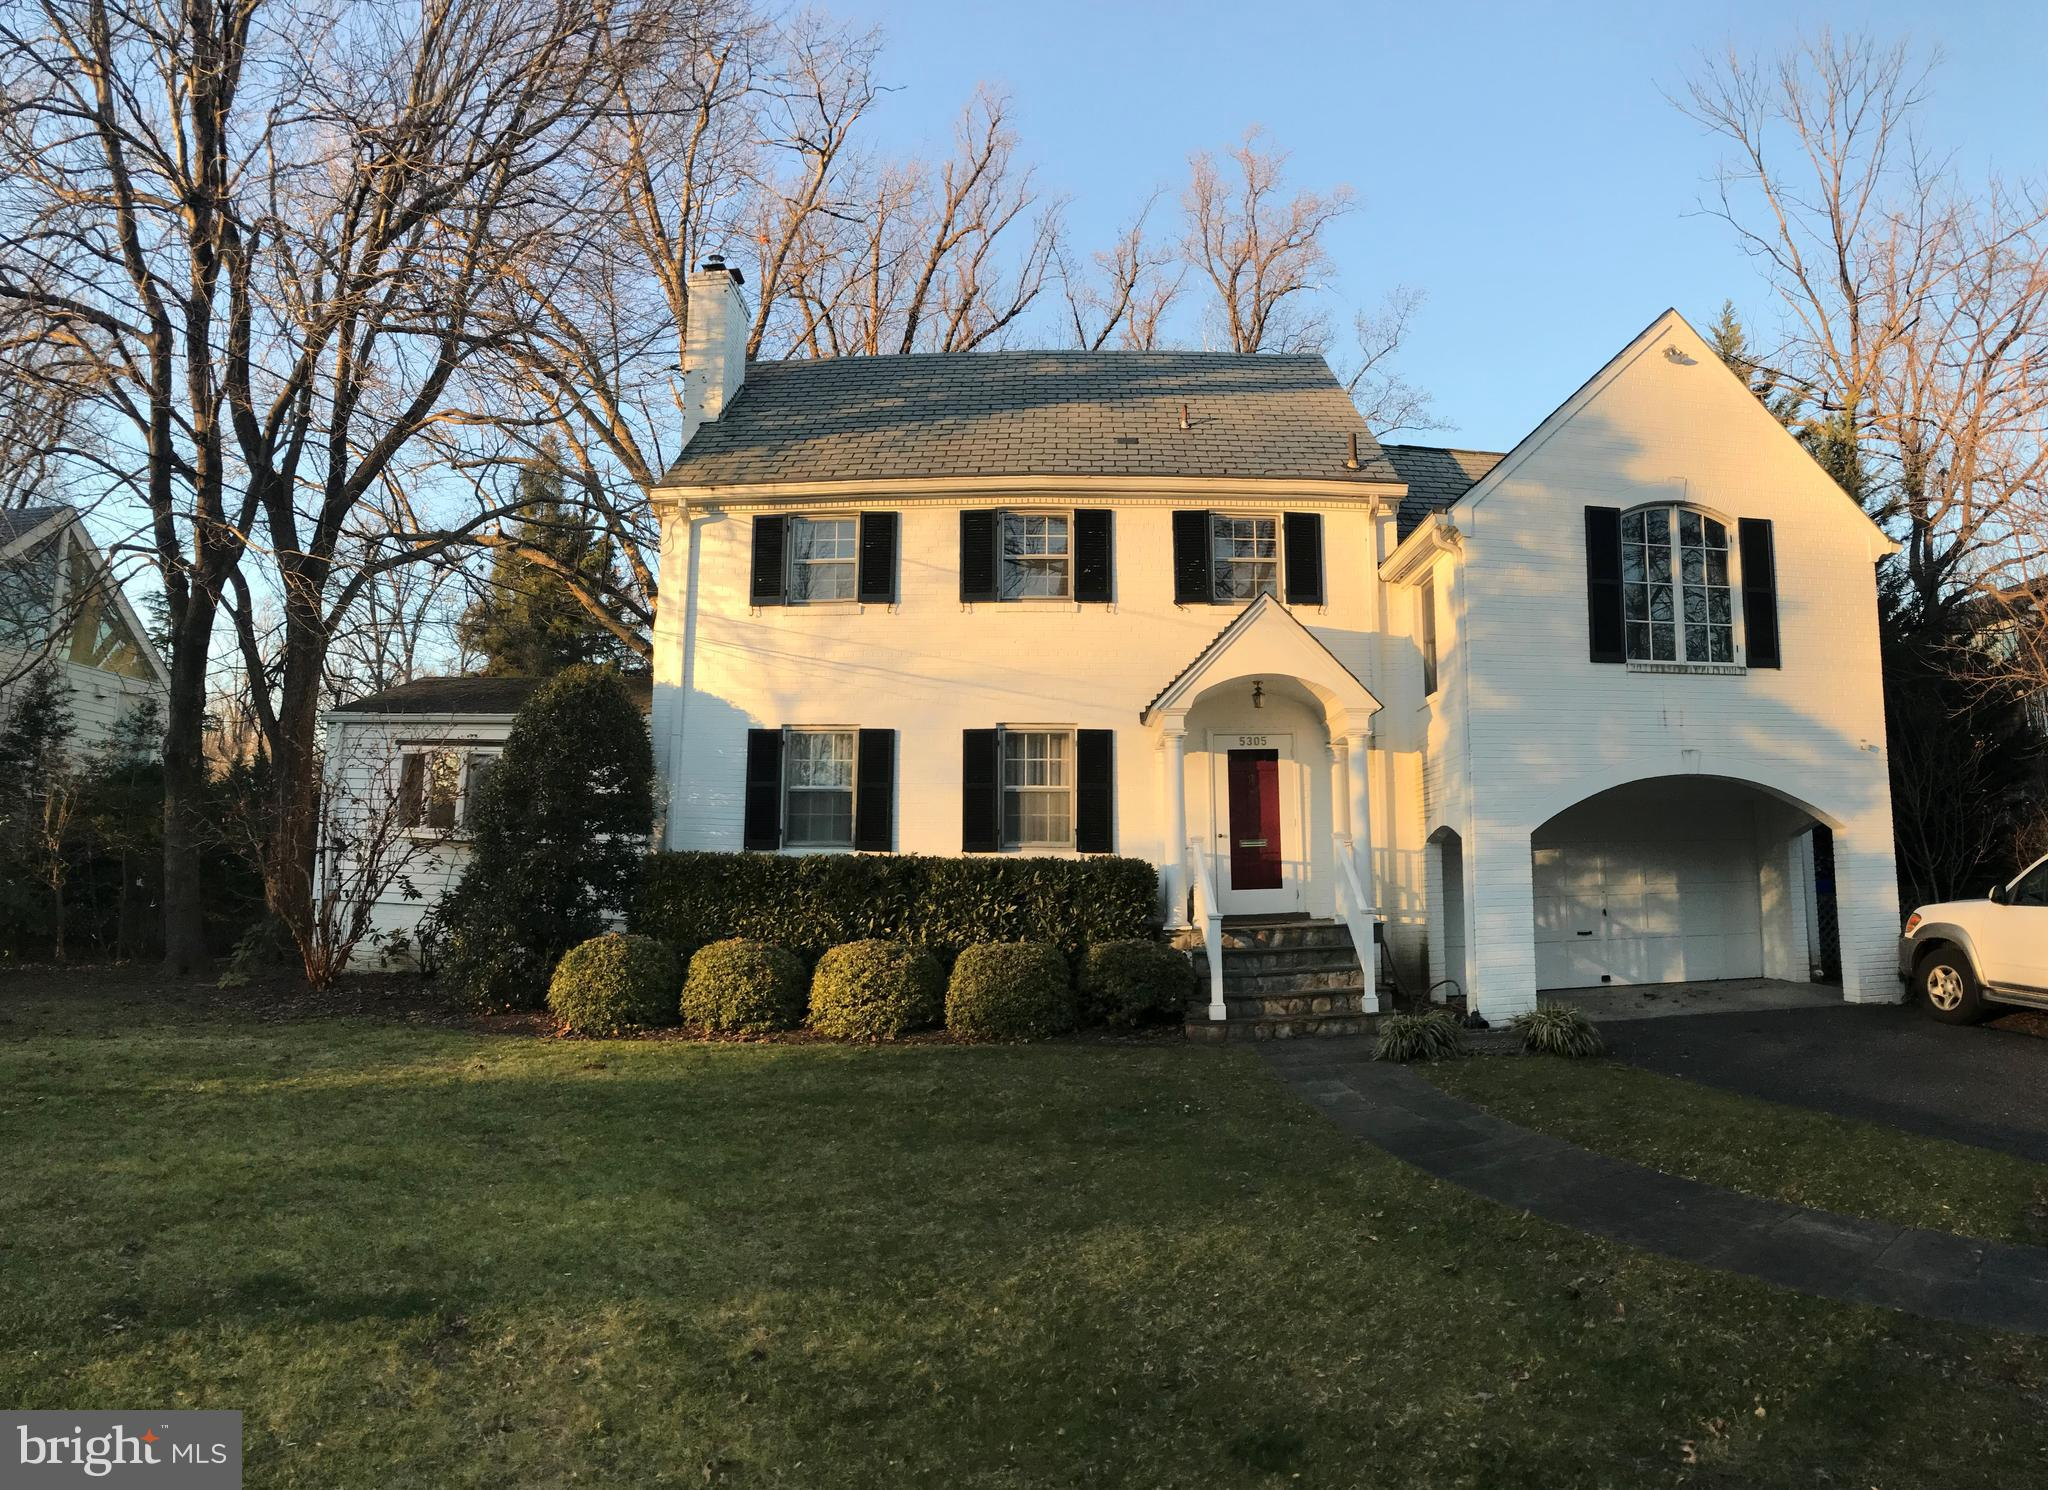 5305 HAMPDEN LANE, BETHESDA, MD 20814